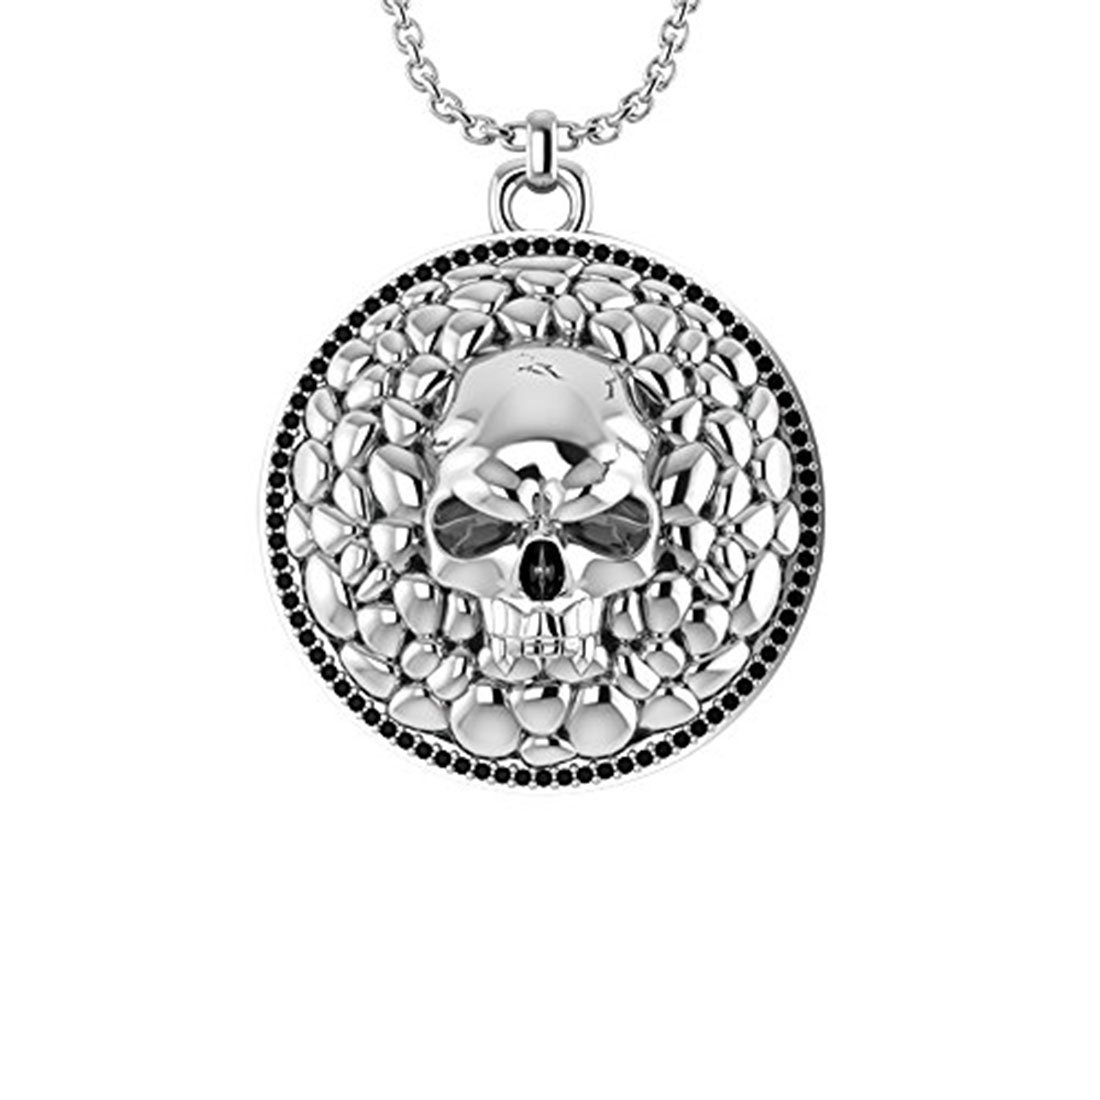 Belinda Jewelz 925 Real Solid Sterling Silver Rhodium Plated Graveyard Skull Medallion Round Gothic Hanging Mens Man Boys Biker Gift Fine Jewelry Long Curb Chain Necklace Pendant, Onyx Black, 24-inch